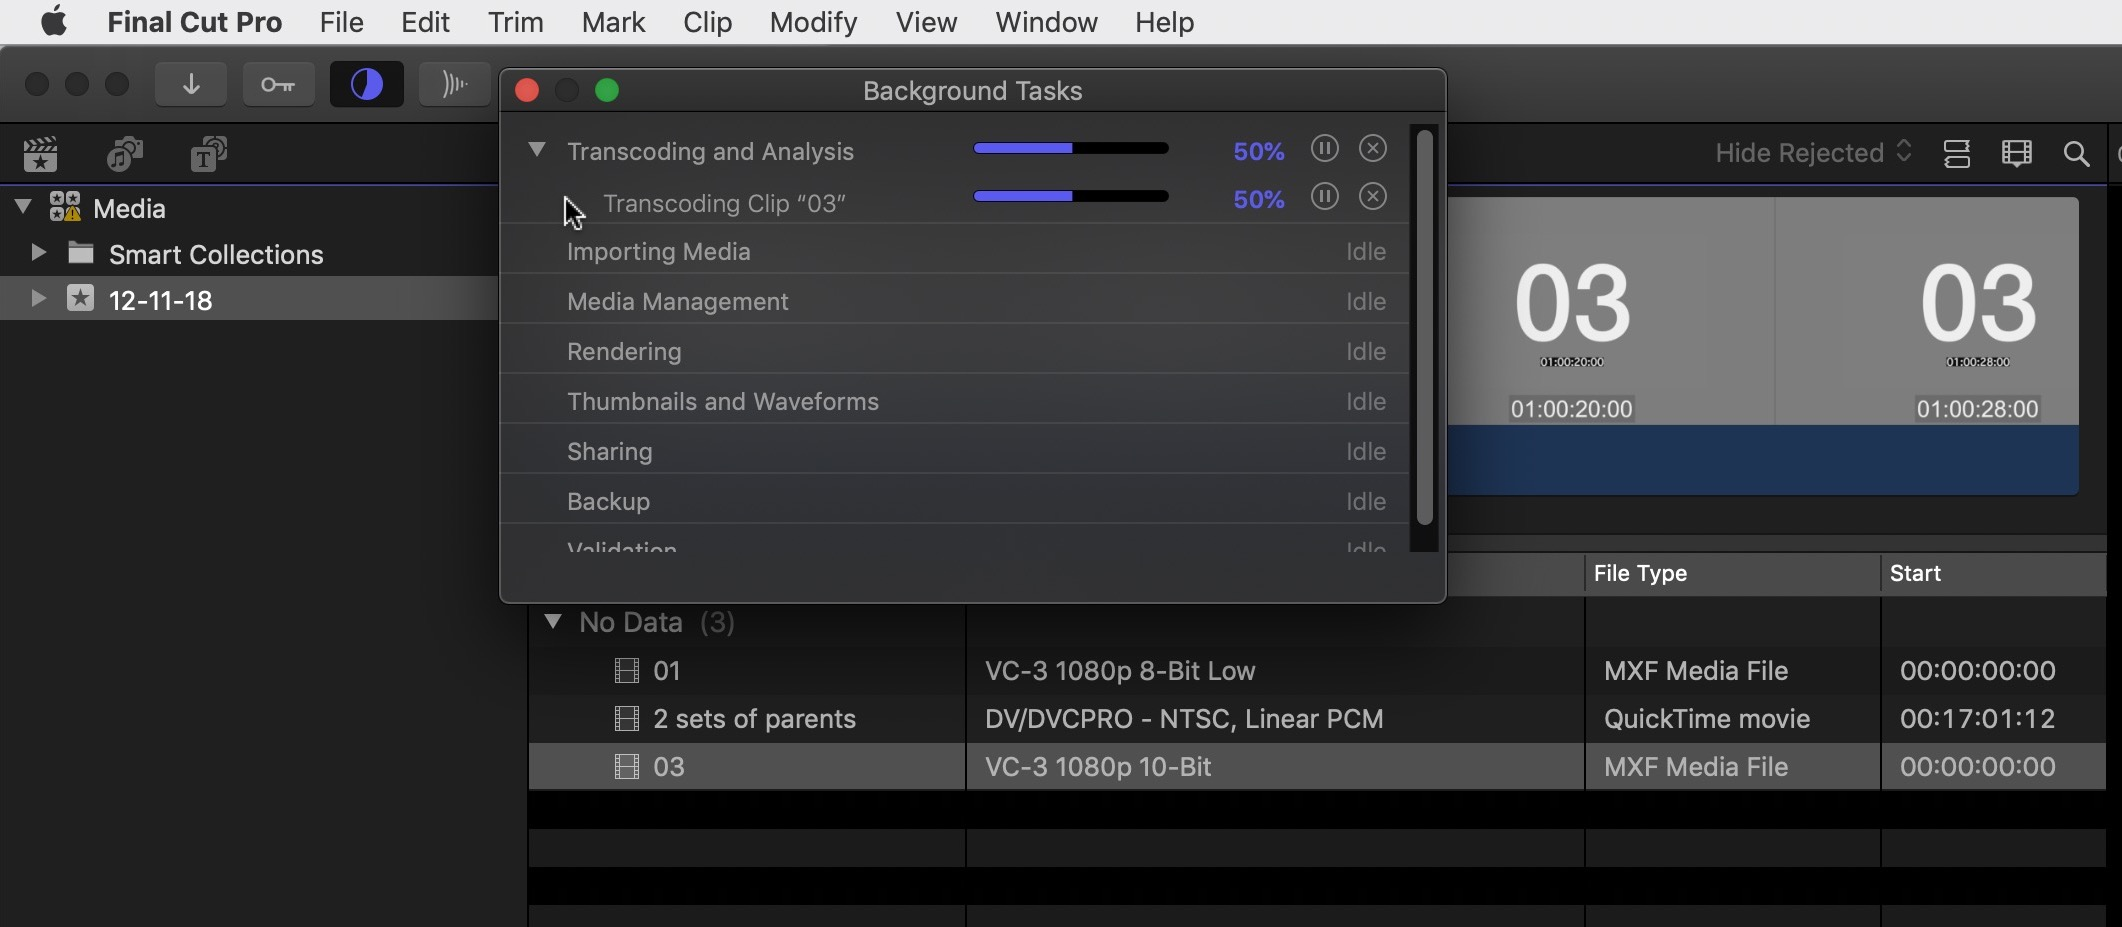 Final Cut Pro X updated to 10.4.6 to deal with Legacy Media 14